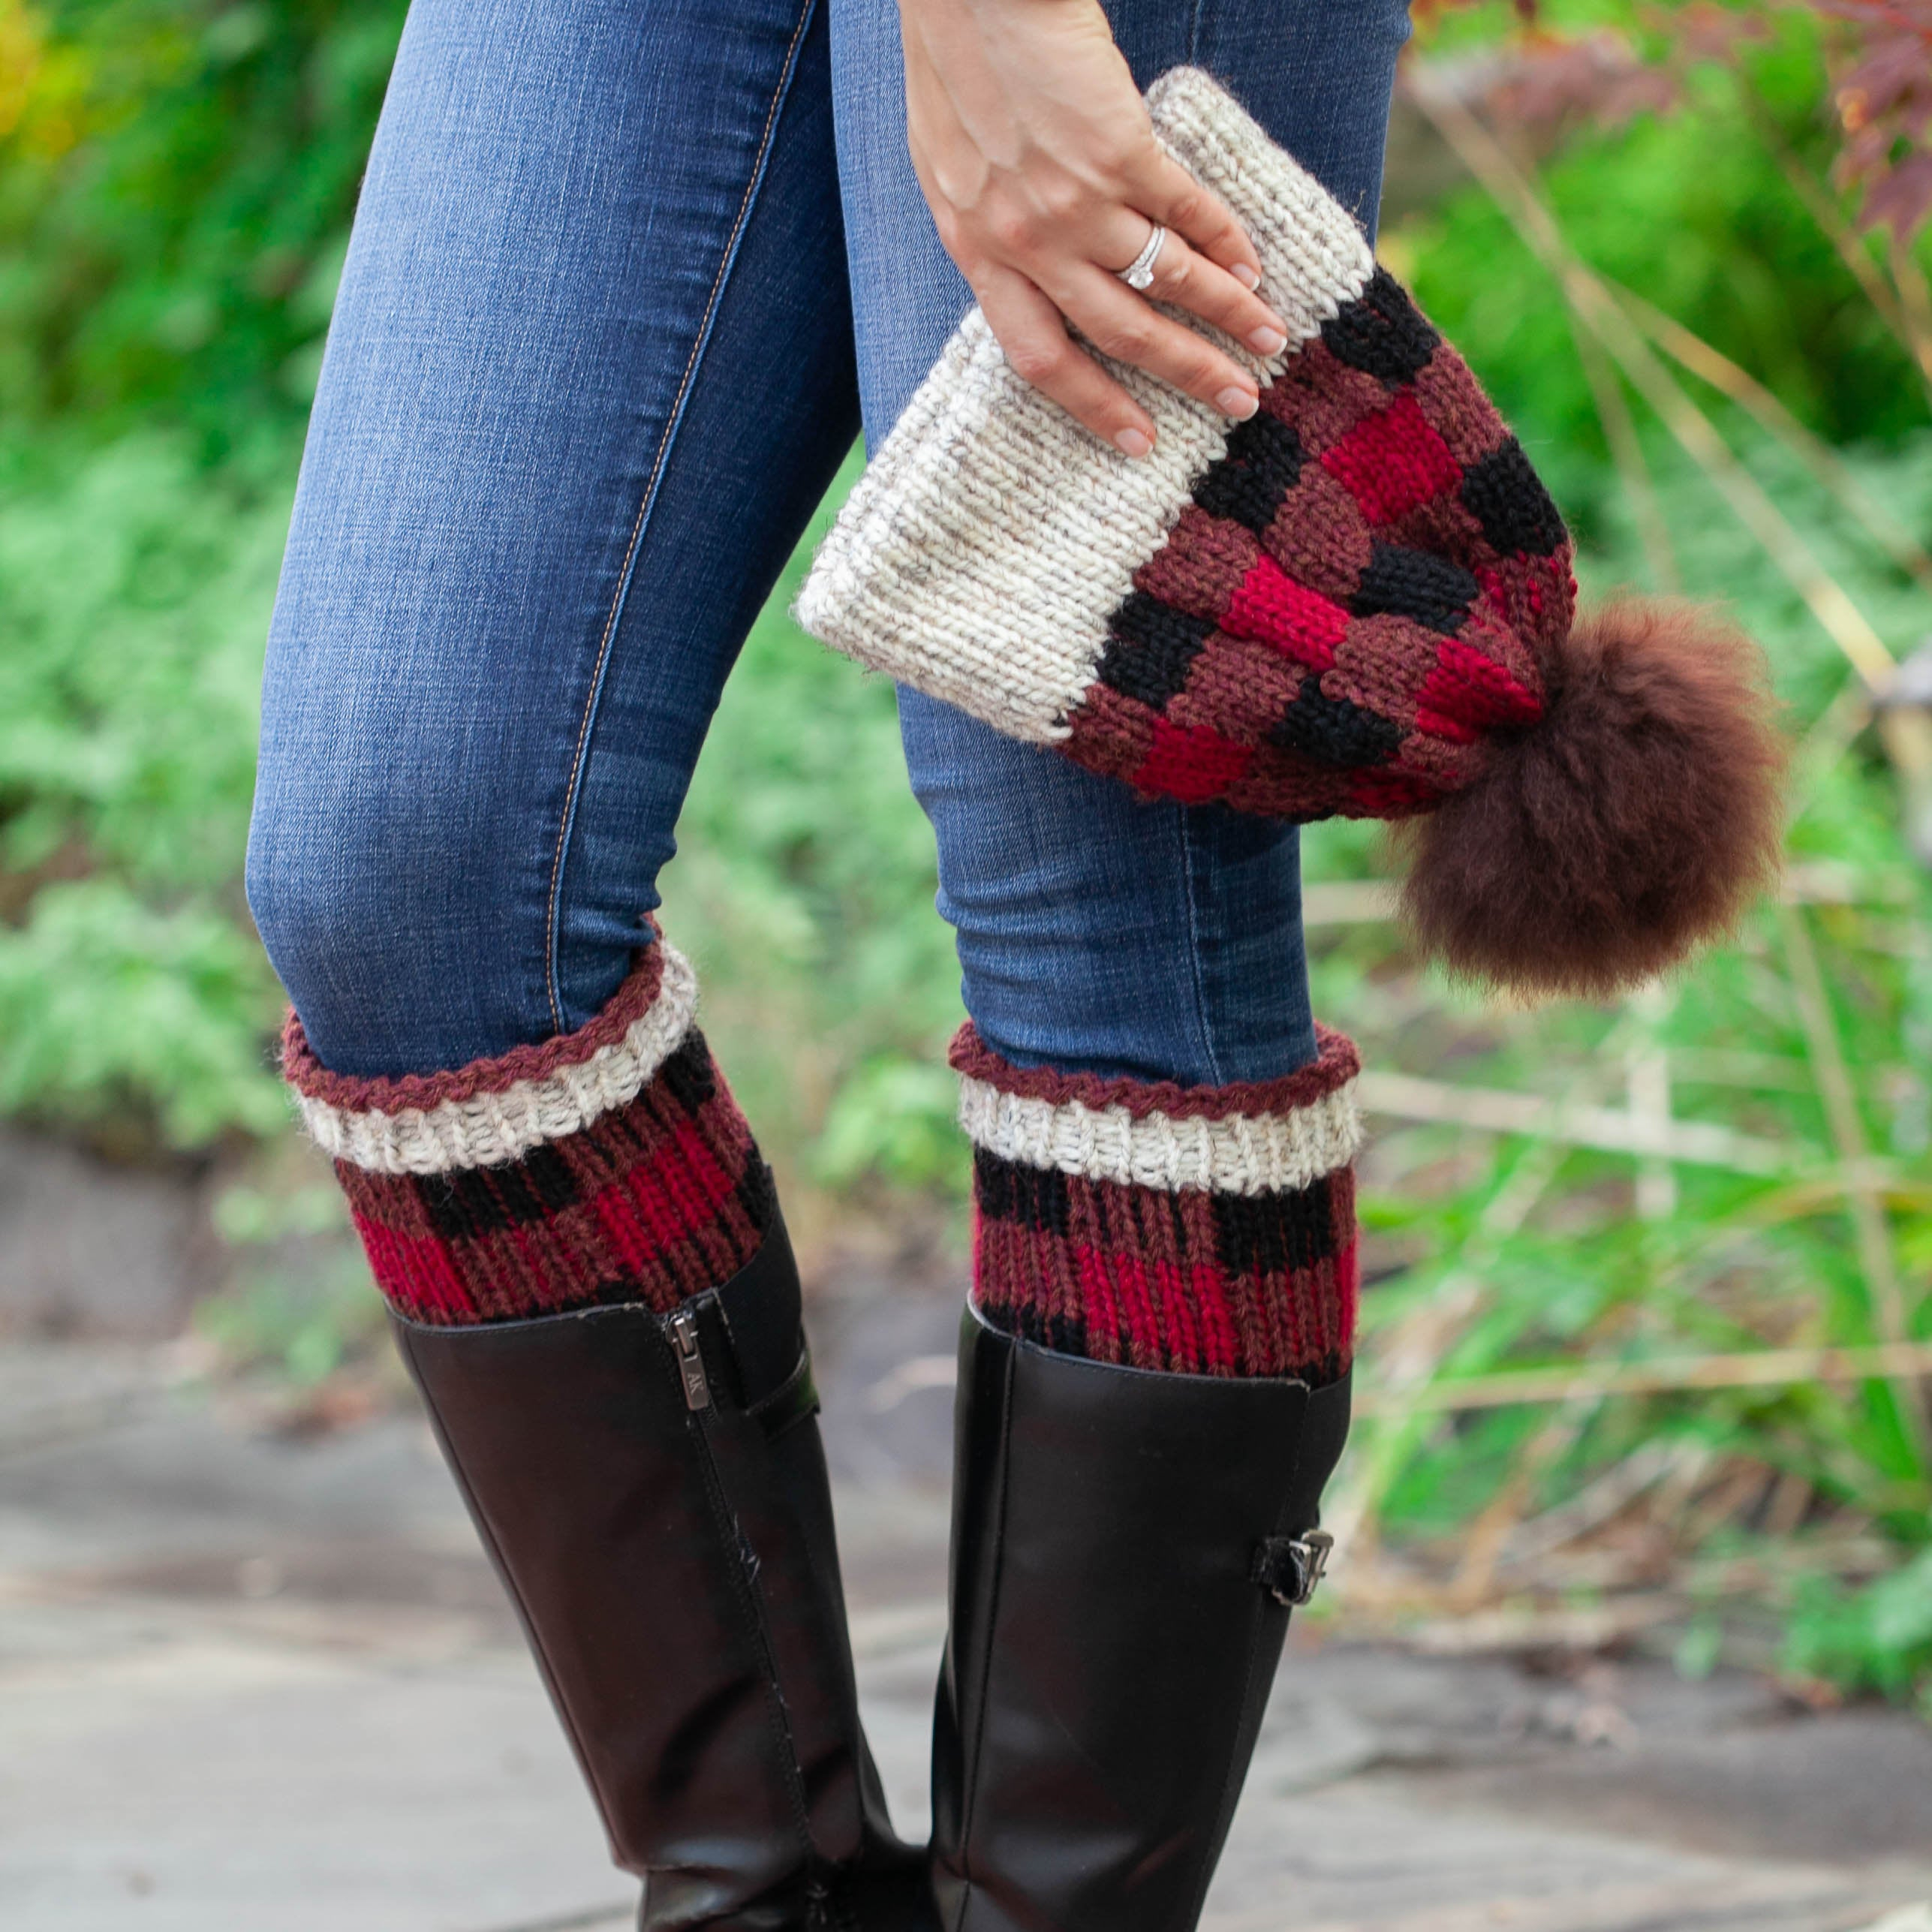 Free Knitting Patterns For Boot Toppers Loom Knit Buffalo Plaid Hat Boot Toppers Pdf Pattern Set Easy Colorwork Beginner Friendly Pattern Download This Is A Digital File